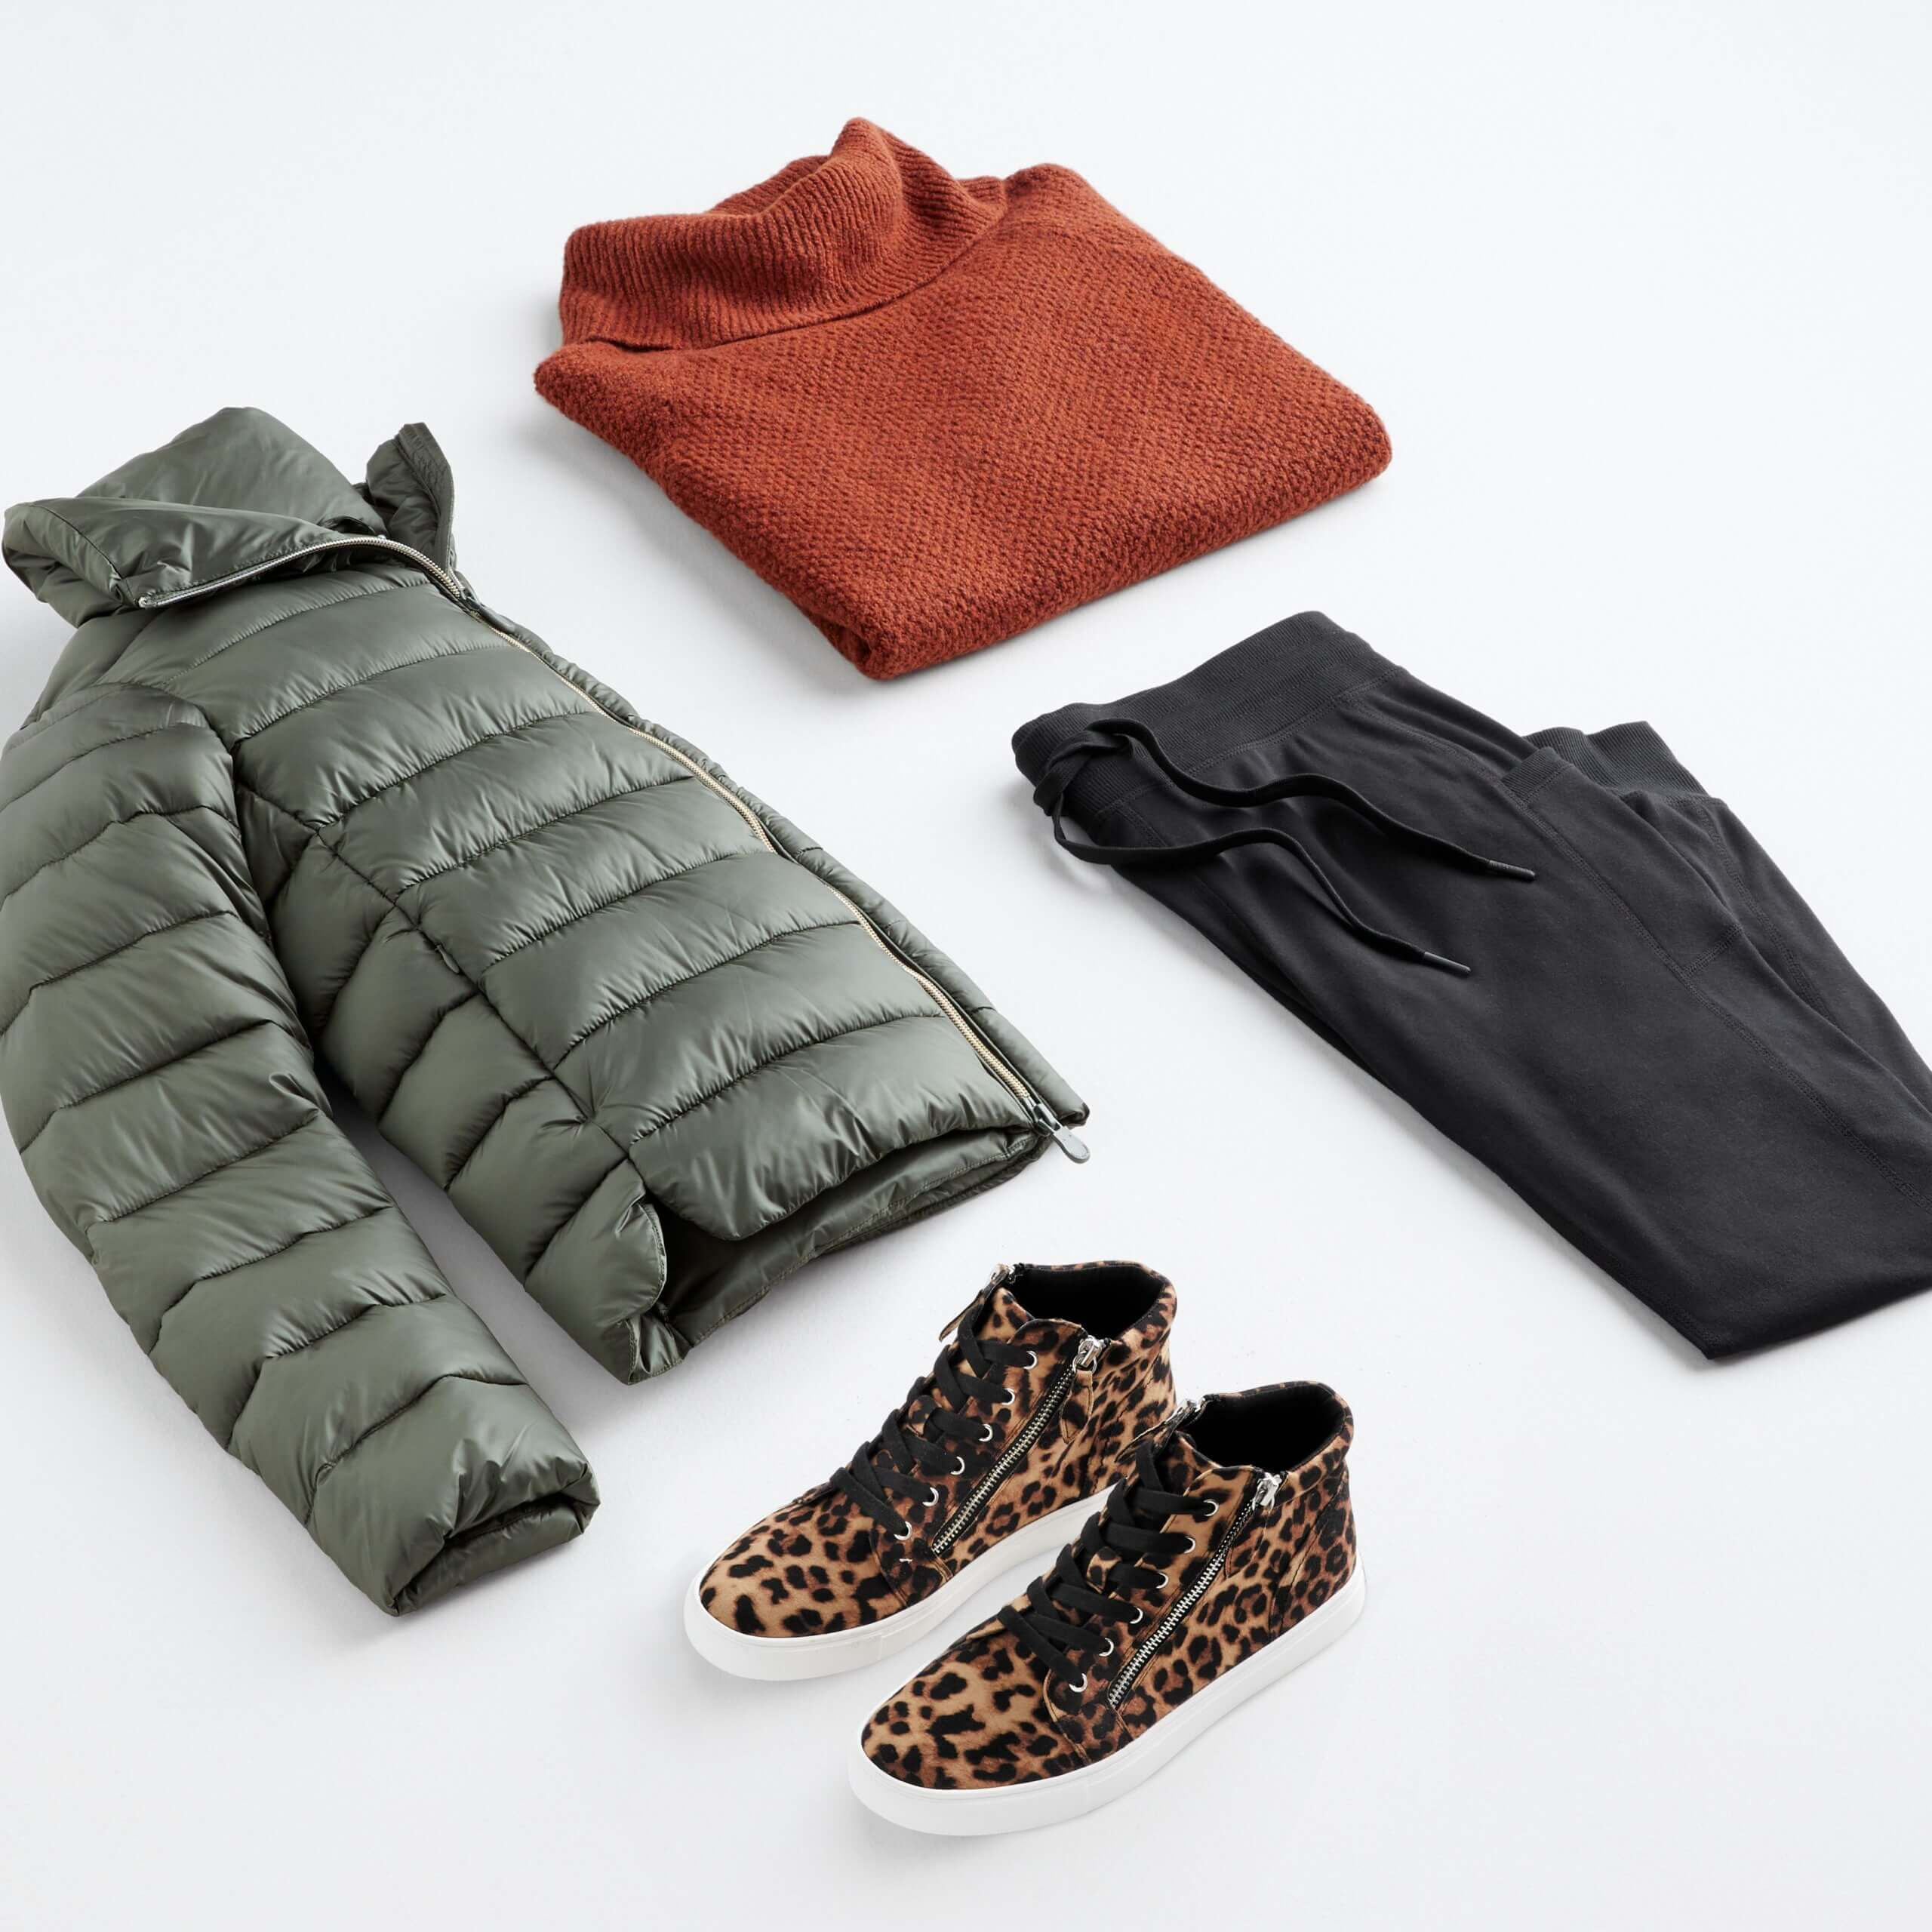 Stitch Fix Women's outfit laydown featuring green puffer jacket, burnt orange turtleneck pullover sweater, black jogger pants and cheetah-print high top sneakers.